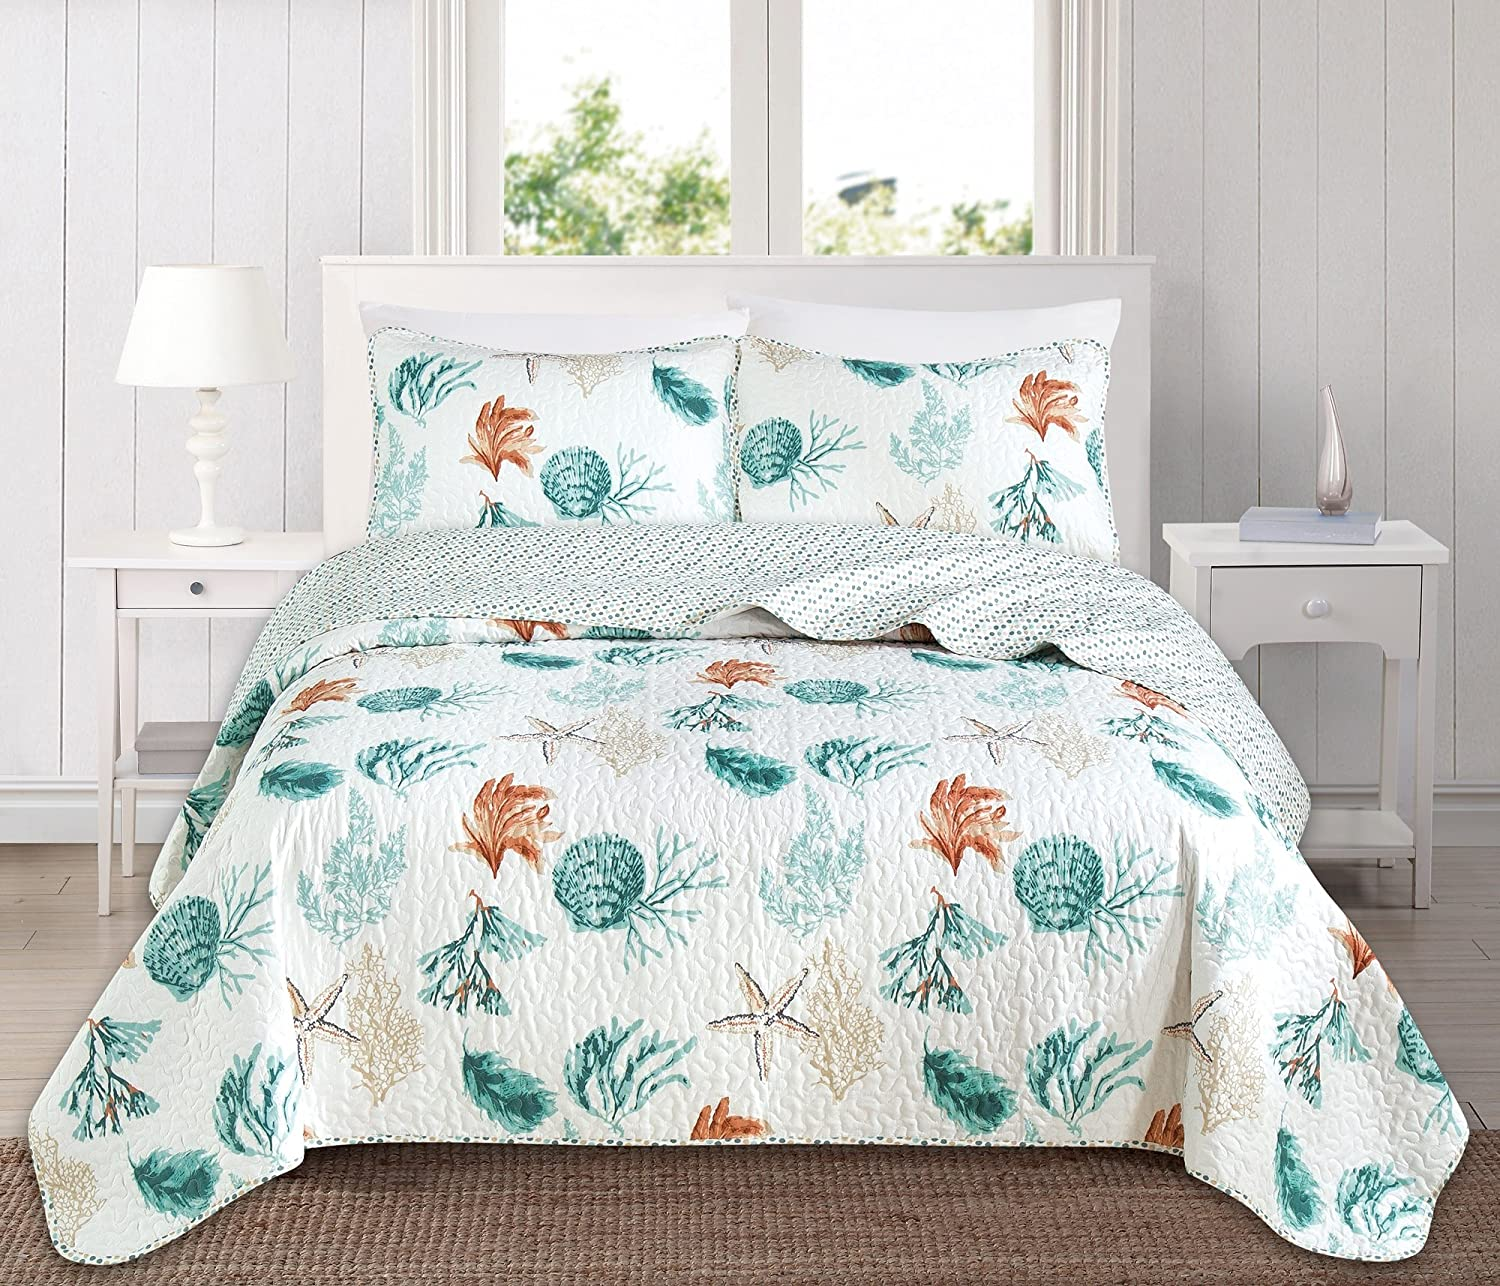 Great Bay Home 2 Piece Quilt Set with Shams. Soft All-Season Cotton Blend Bedspread Featuring Attractive Seascape Images. The Key West Collection Brand. (Twin)